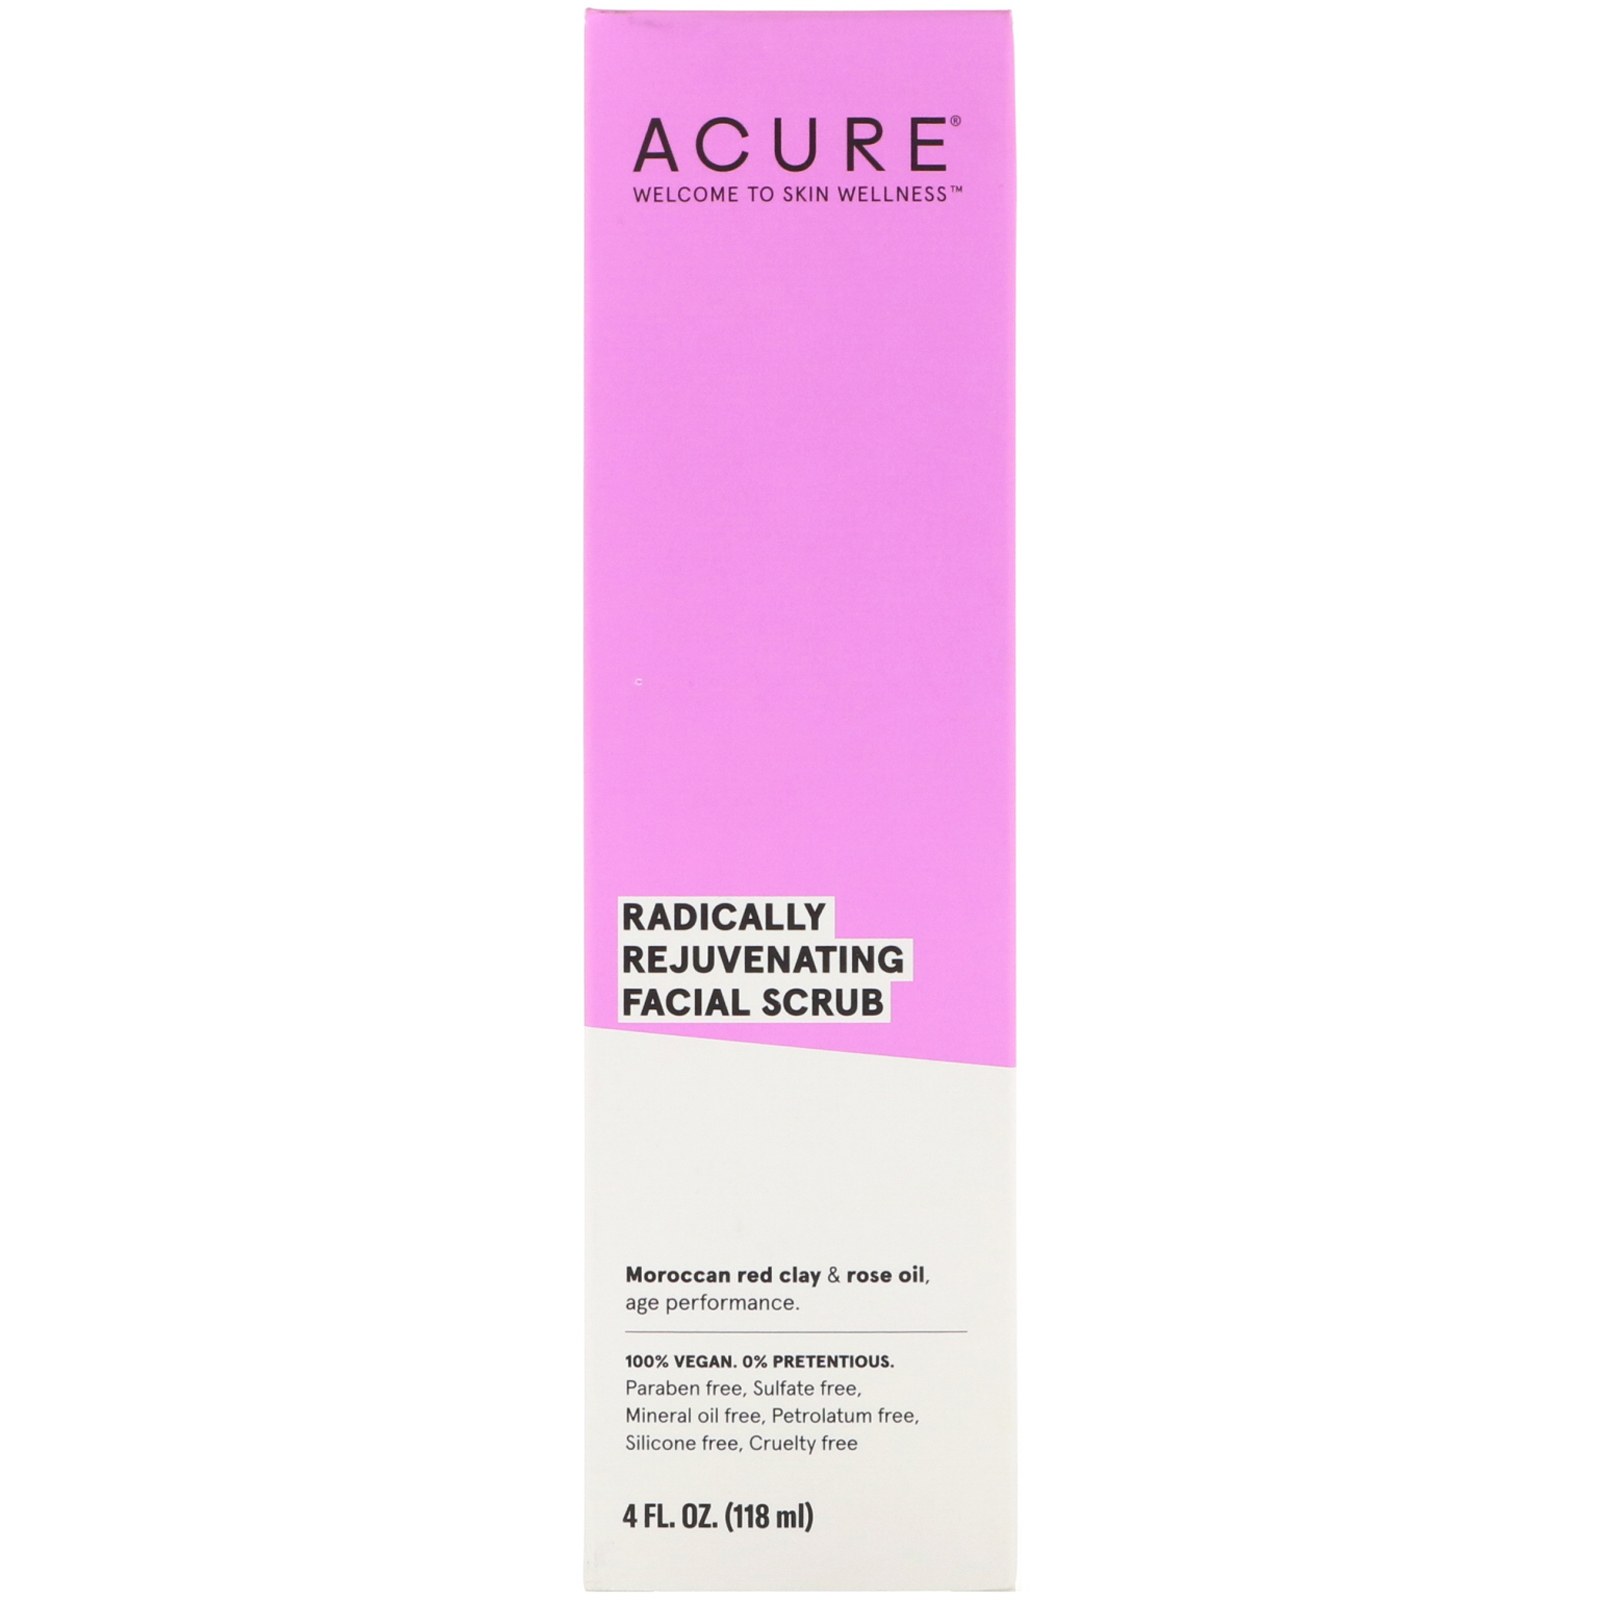 Acure, Radically Rejuvenating Facial Scrub, 4 Fl Oz (118